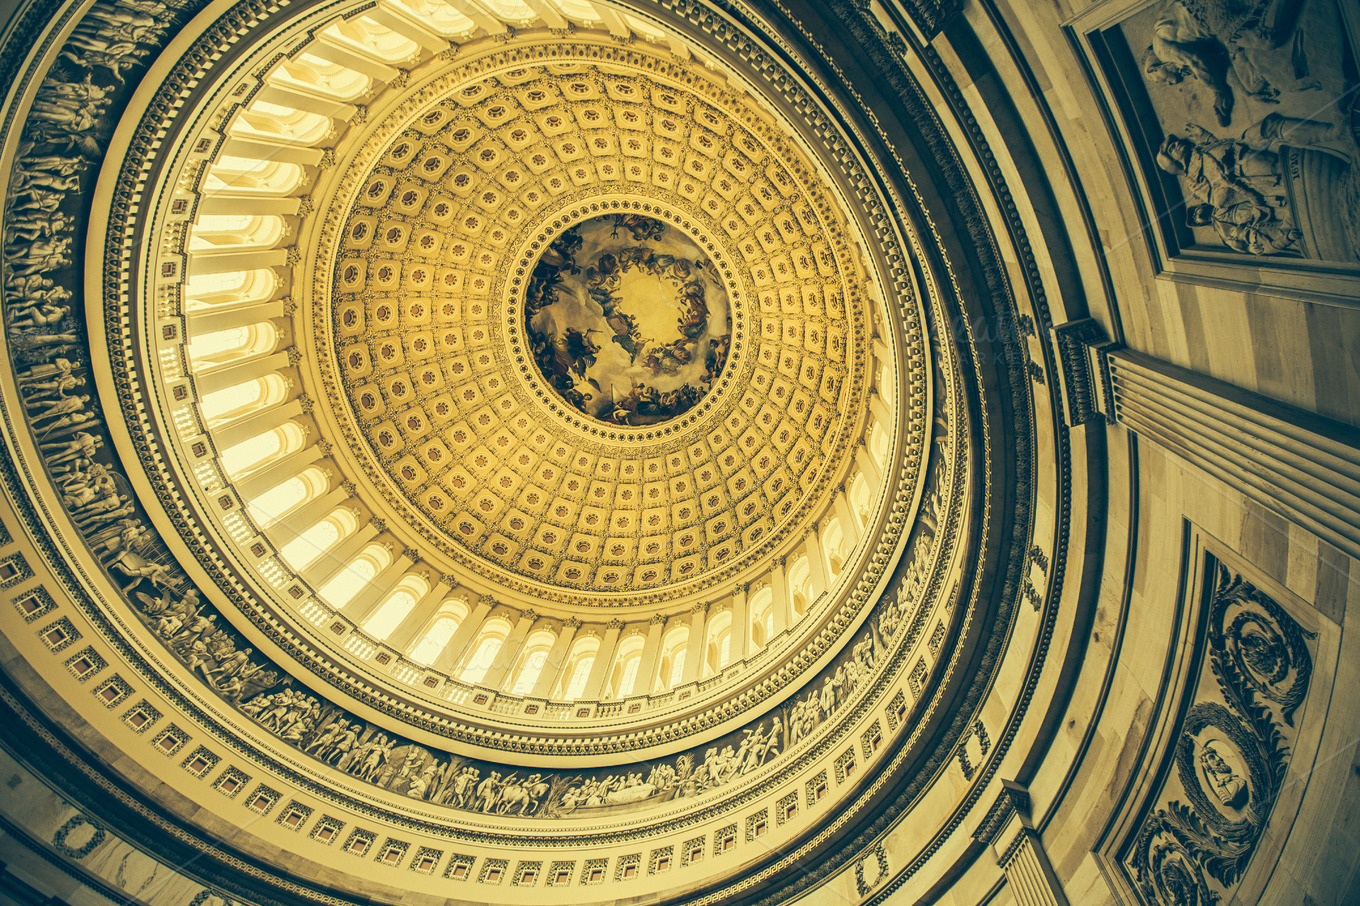 Dome of Washington Capitol by Ben Geier